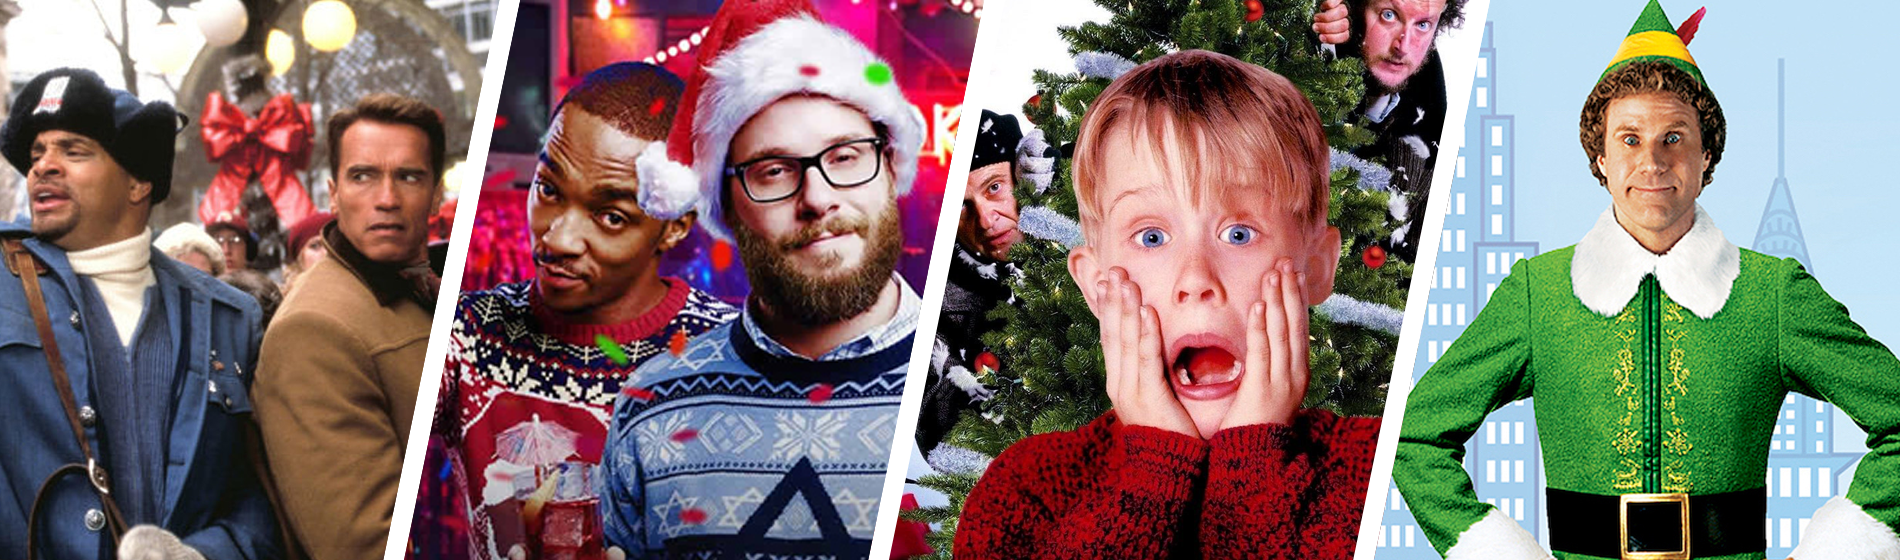 JIngle All the Way, Night Before, Home Alone, and Elf